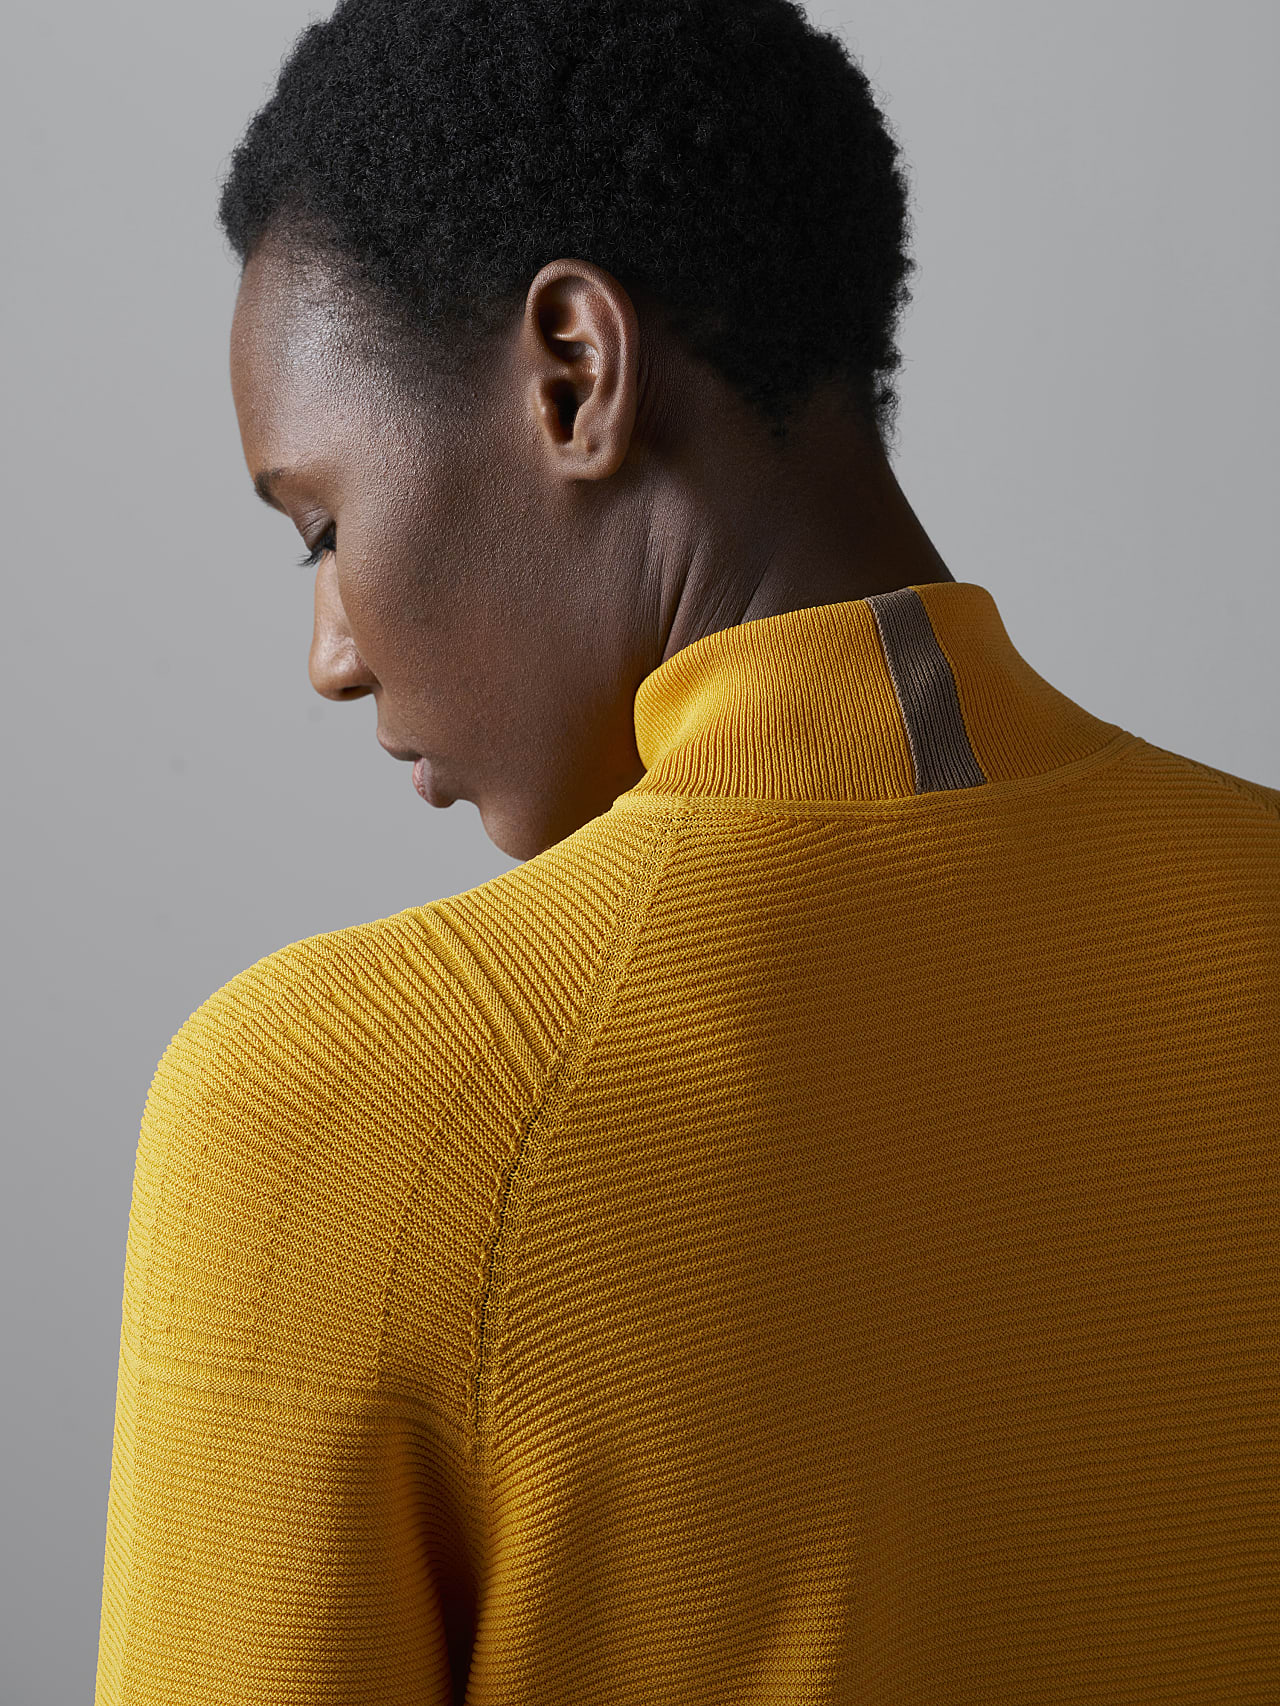 FOXEE V1.Y5.02 Seamless 3D Knit Mock-Neck Dress yellow scene7.view.10.name Alpha Tauri